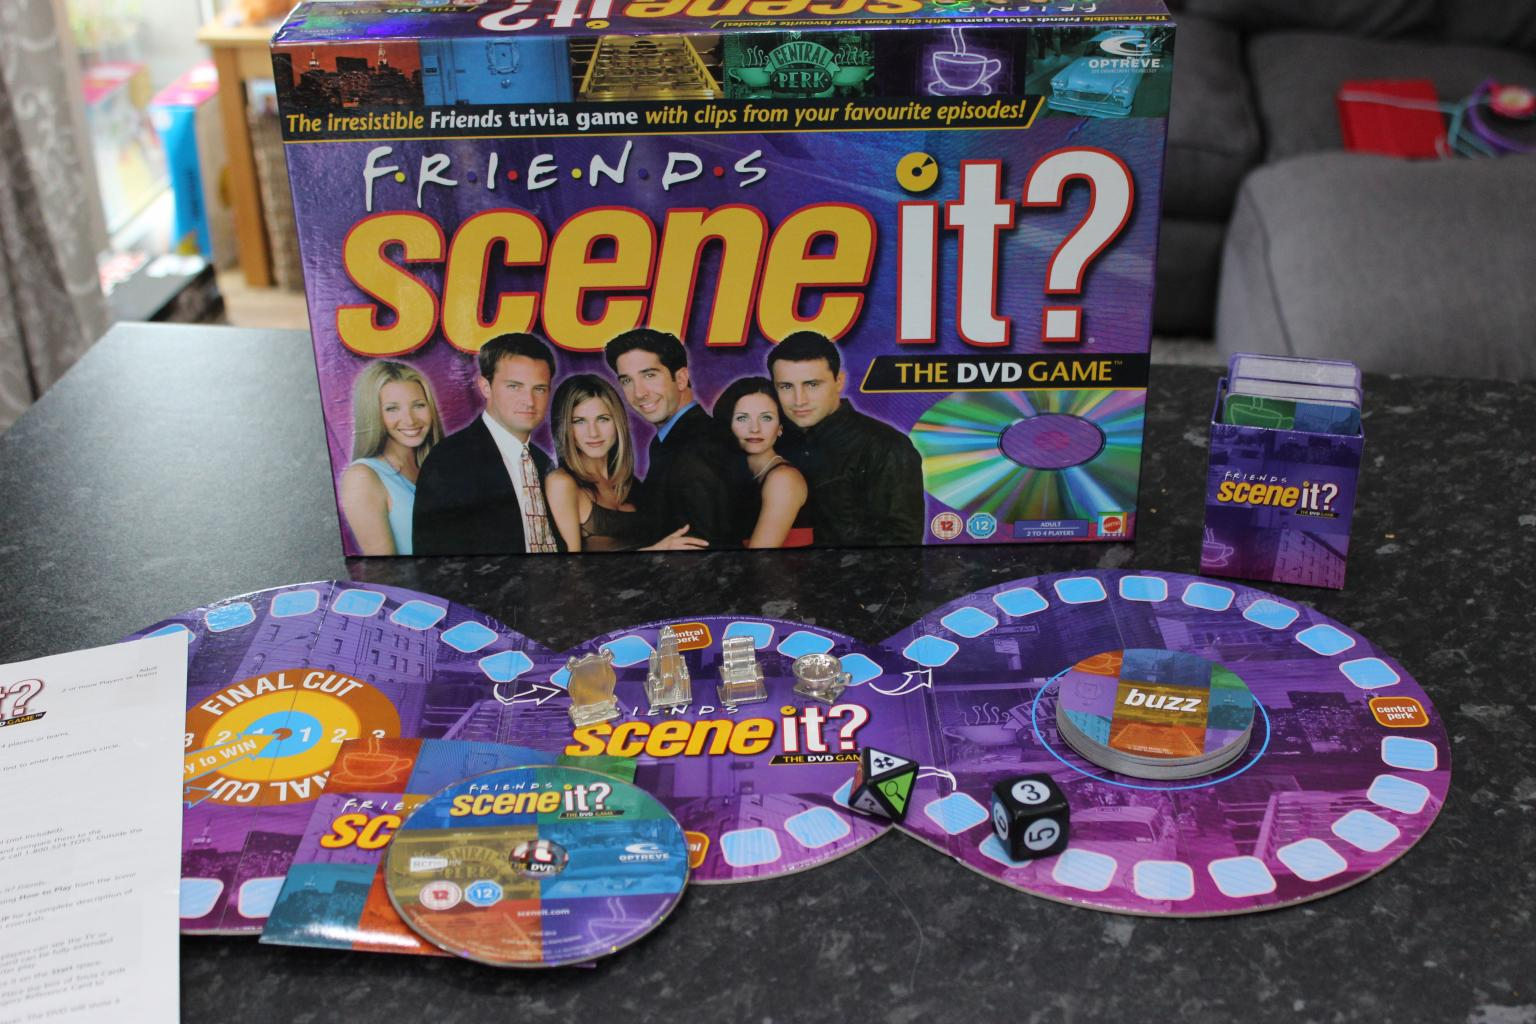 Scene it friends edition dvd board game complete with instructions.